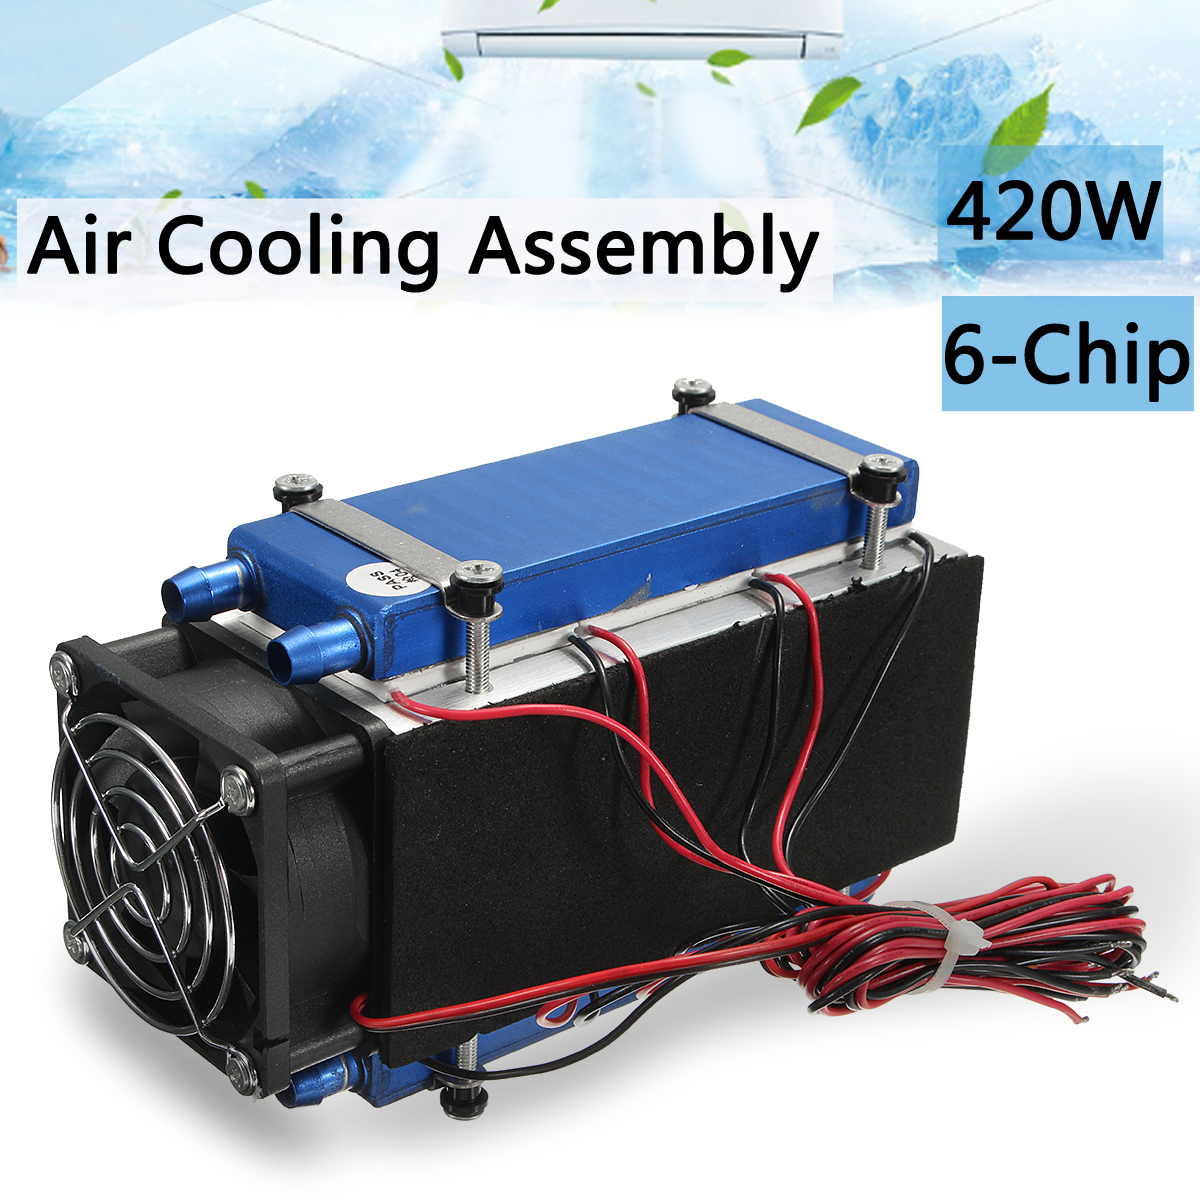 DIY 12V 420W 6-Chip Semiconductor Refrigeration Cooling Device Thermoelectric Cooler Air Conditioning High Cooling Efficiency 1 pcs thermoelectric cooler refrigeration diy kits semiconductor refrigeration water chiller cooling system device 120w 180w